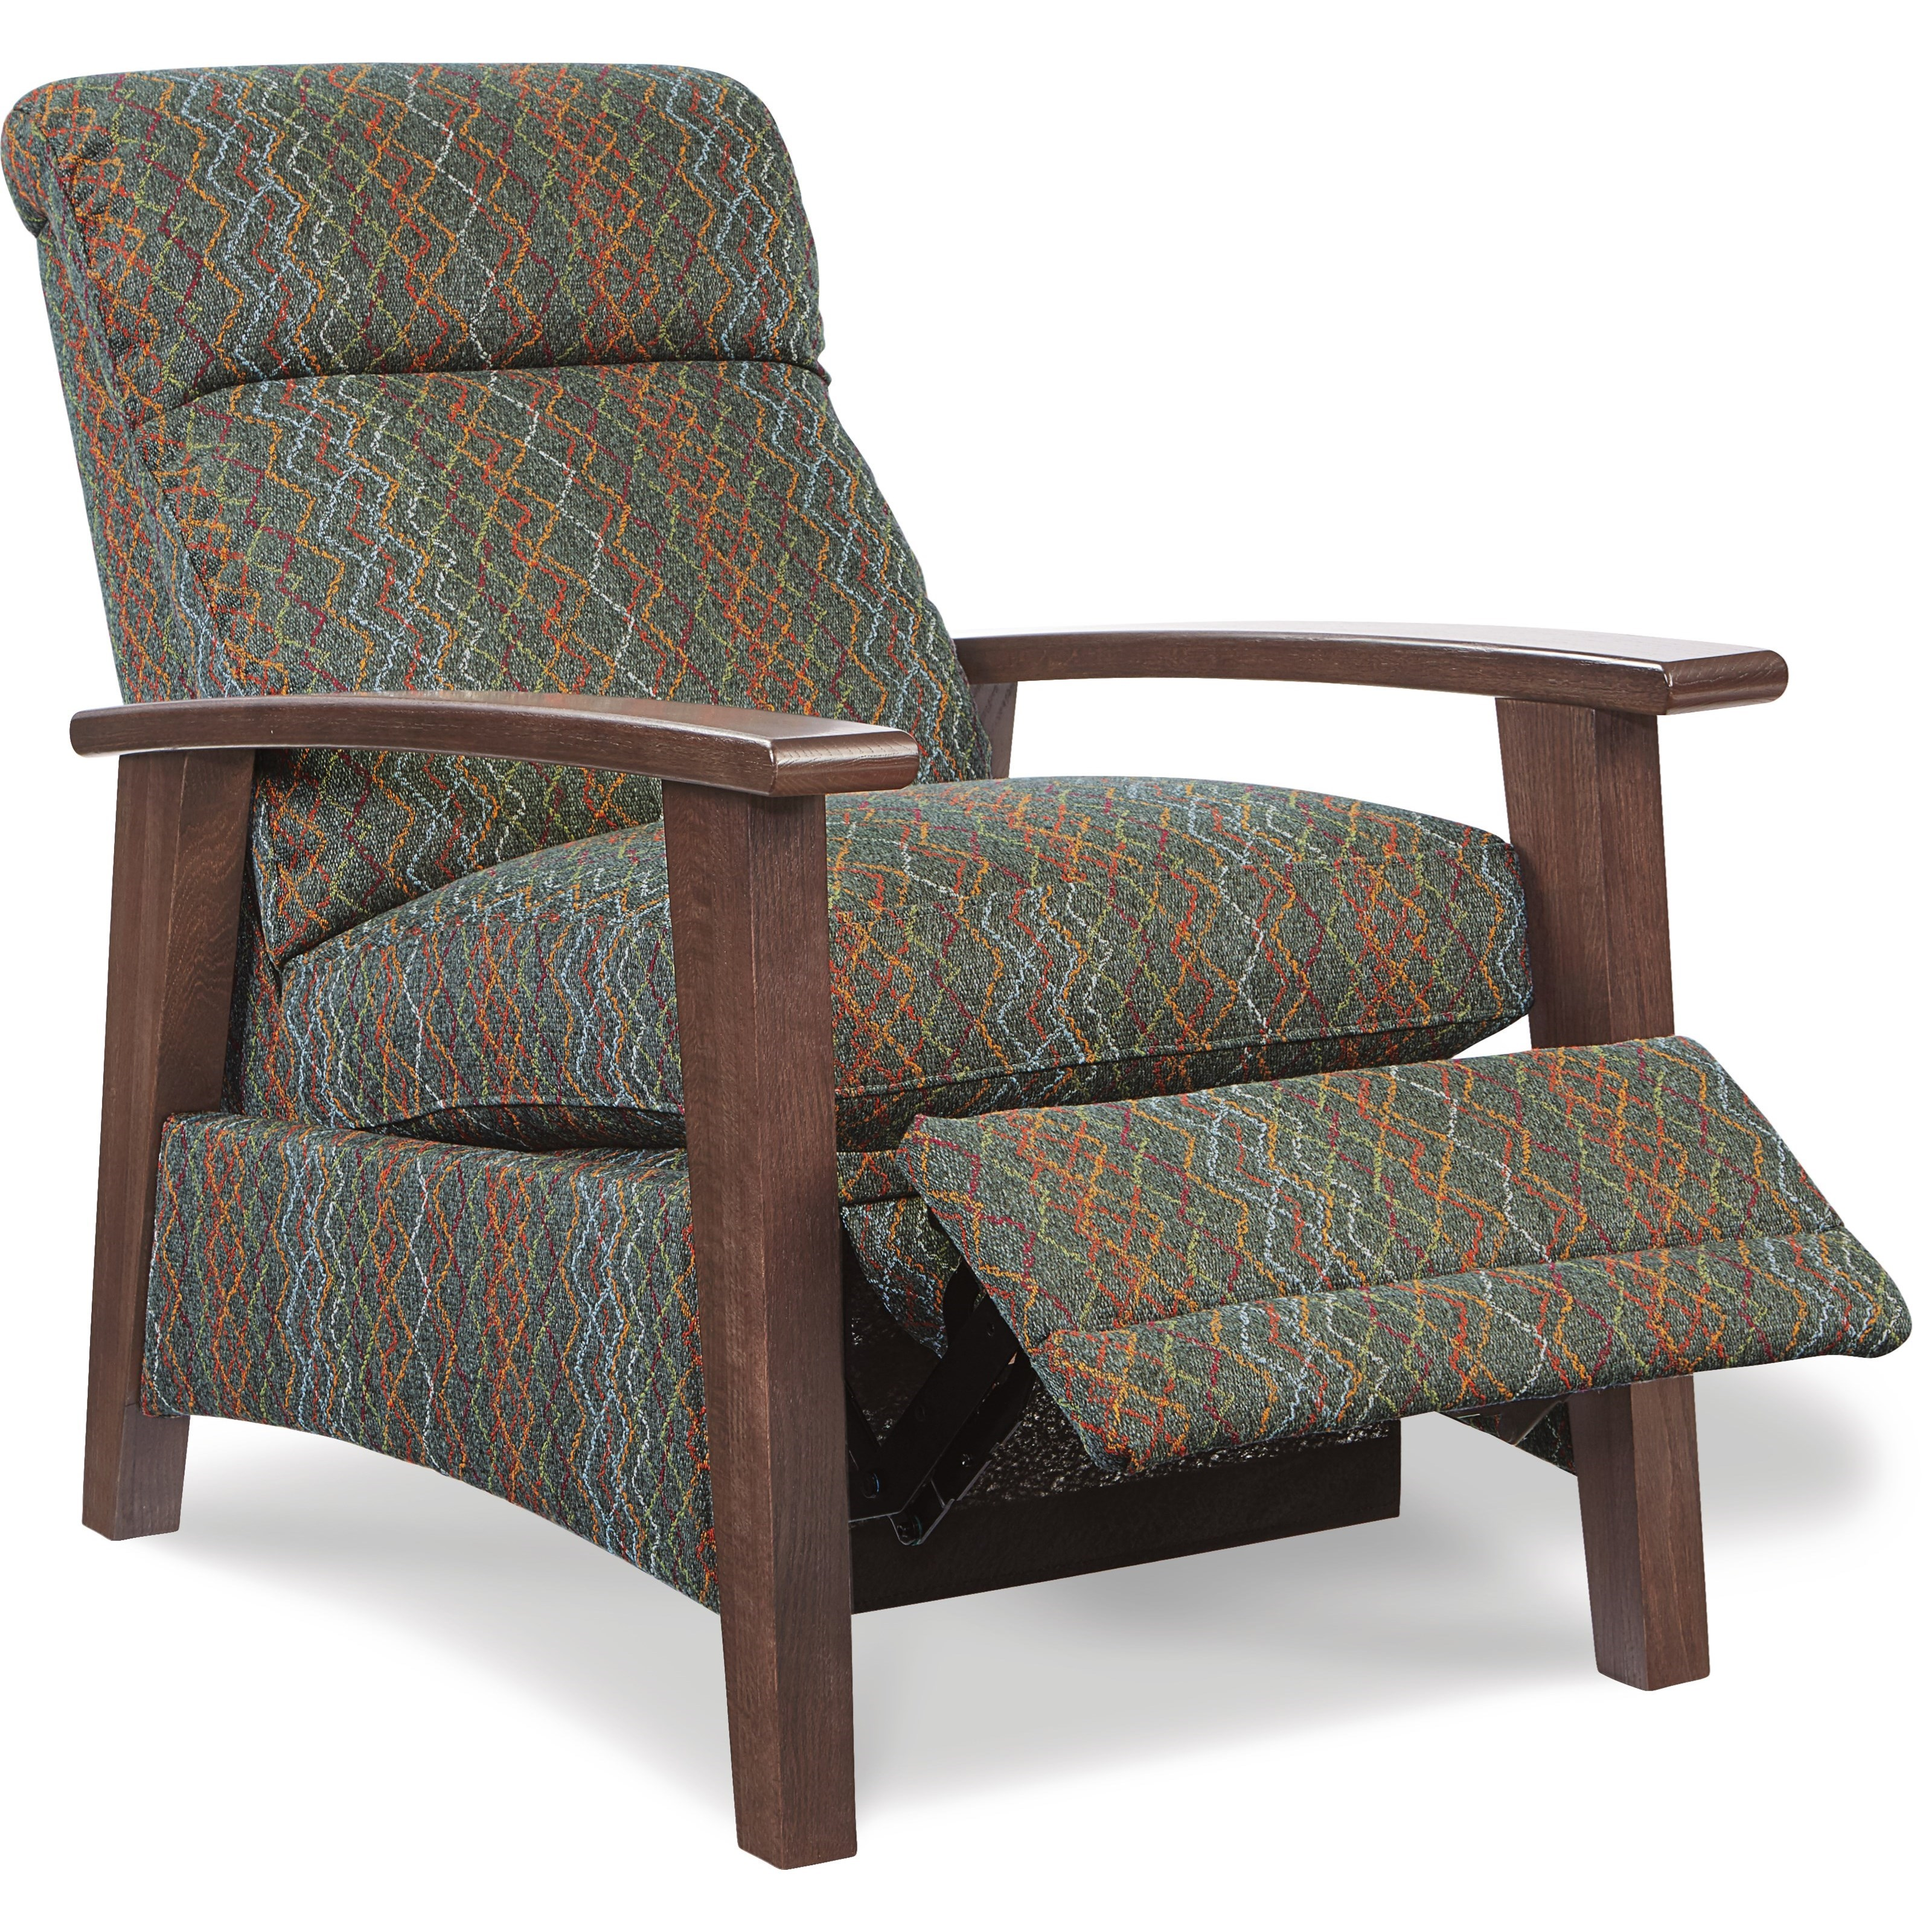 Wood Arm Recliner ~ La z boy recliners nouveau modern recliner with wood arms